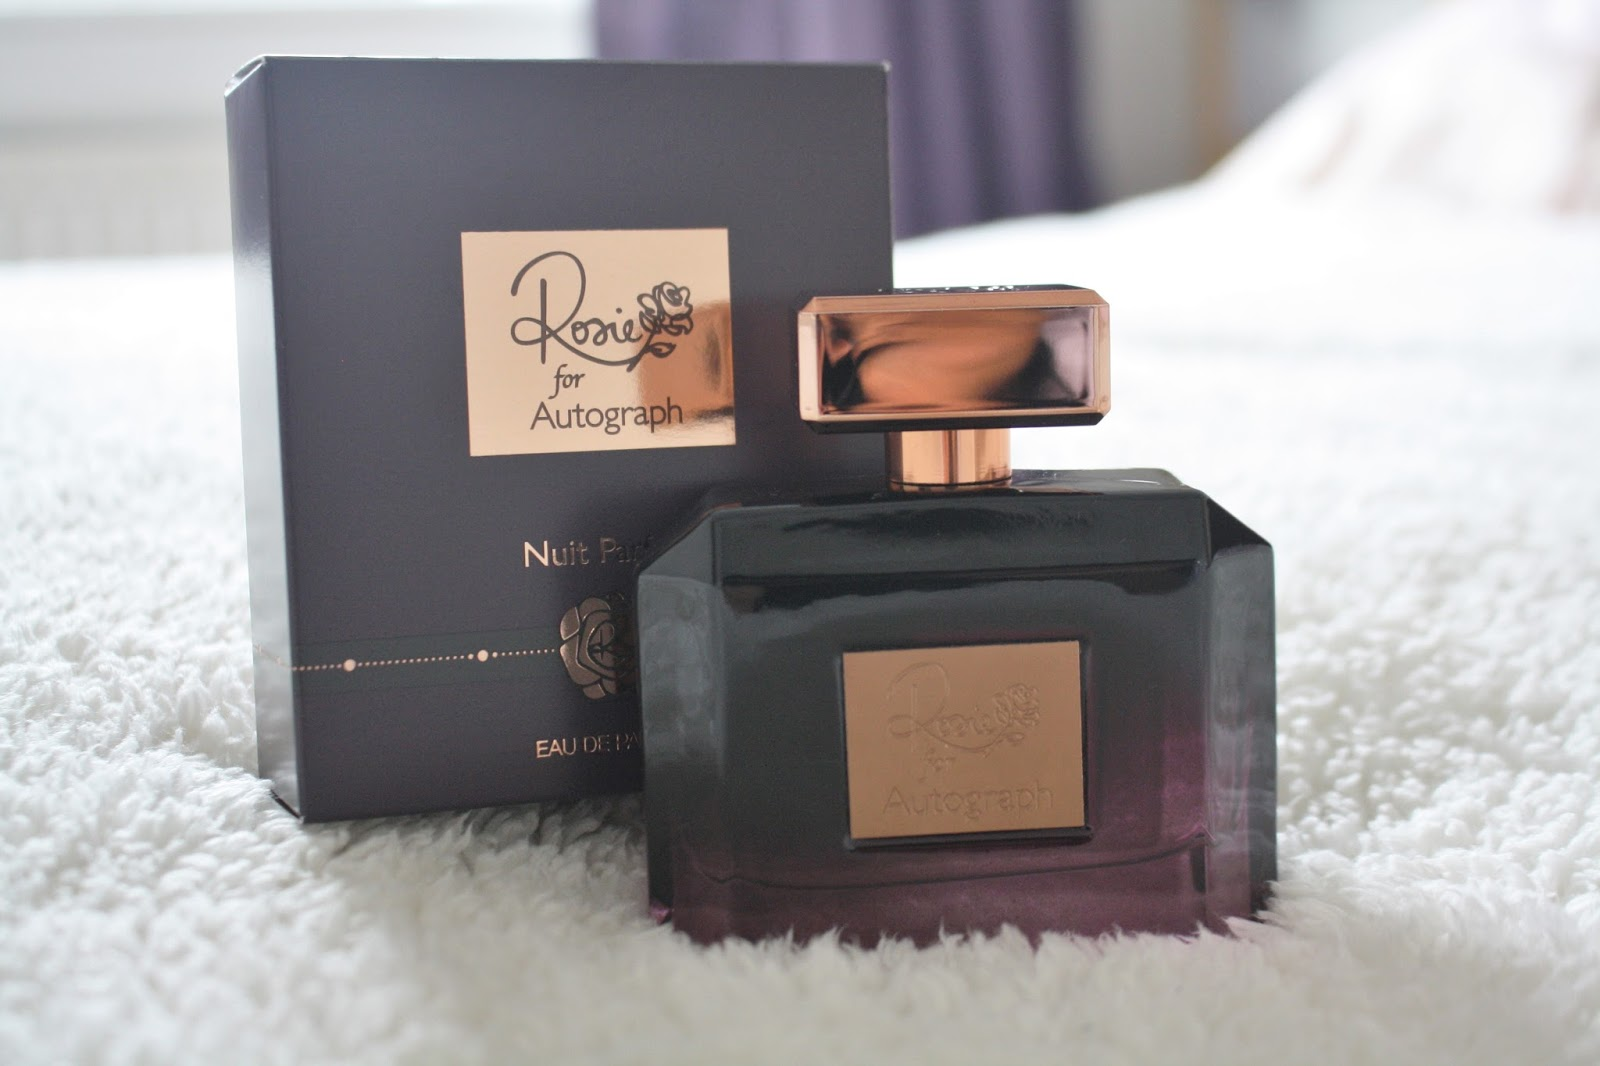 rosie for autograph nuit parfum review, perfume review, rosie huntington whiteley perfume review, m&s perfume products